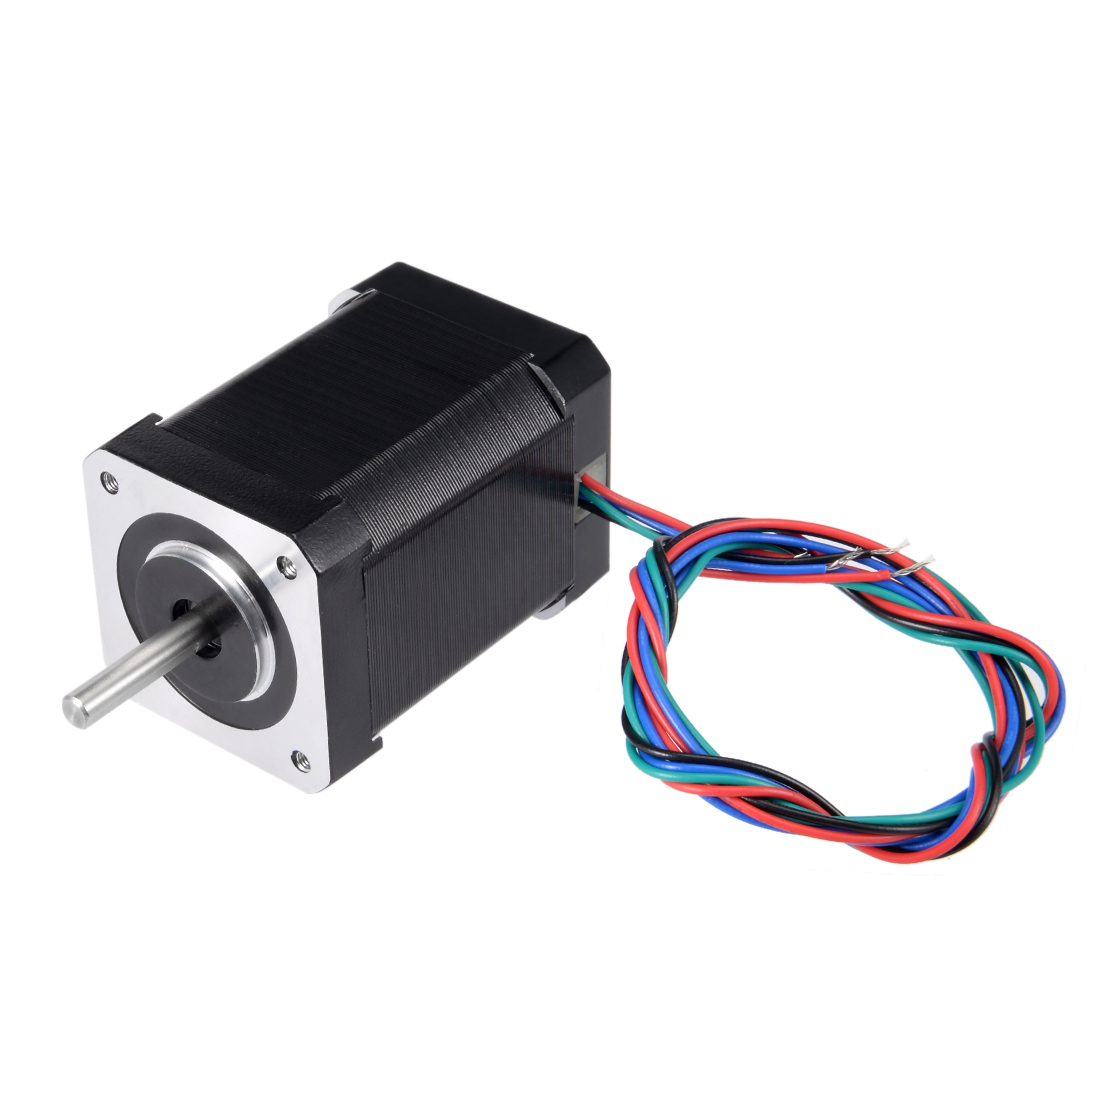 Nema 17 2-Phase Hybrid Stepper Motor 75N.cm 63mm Body for 3D Printer/CNC